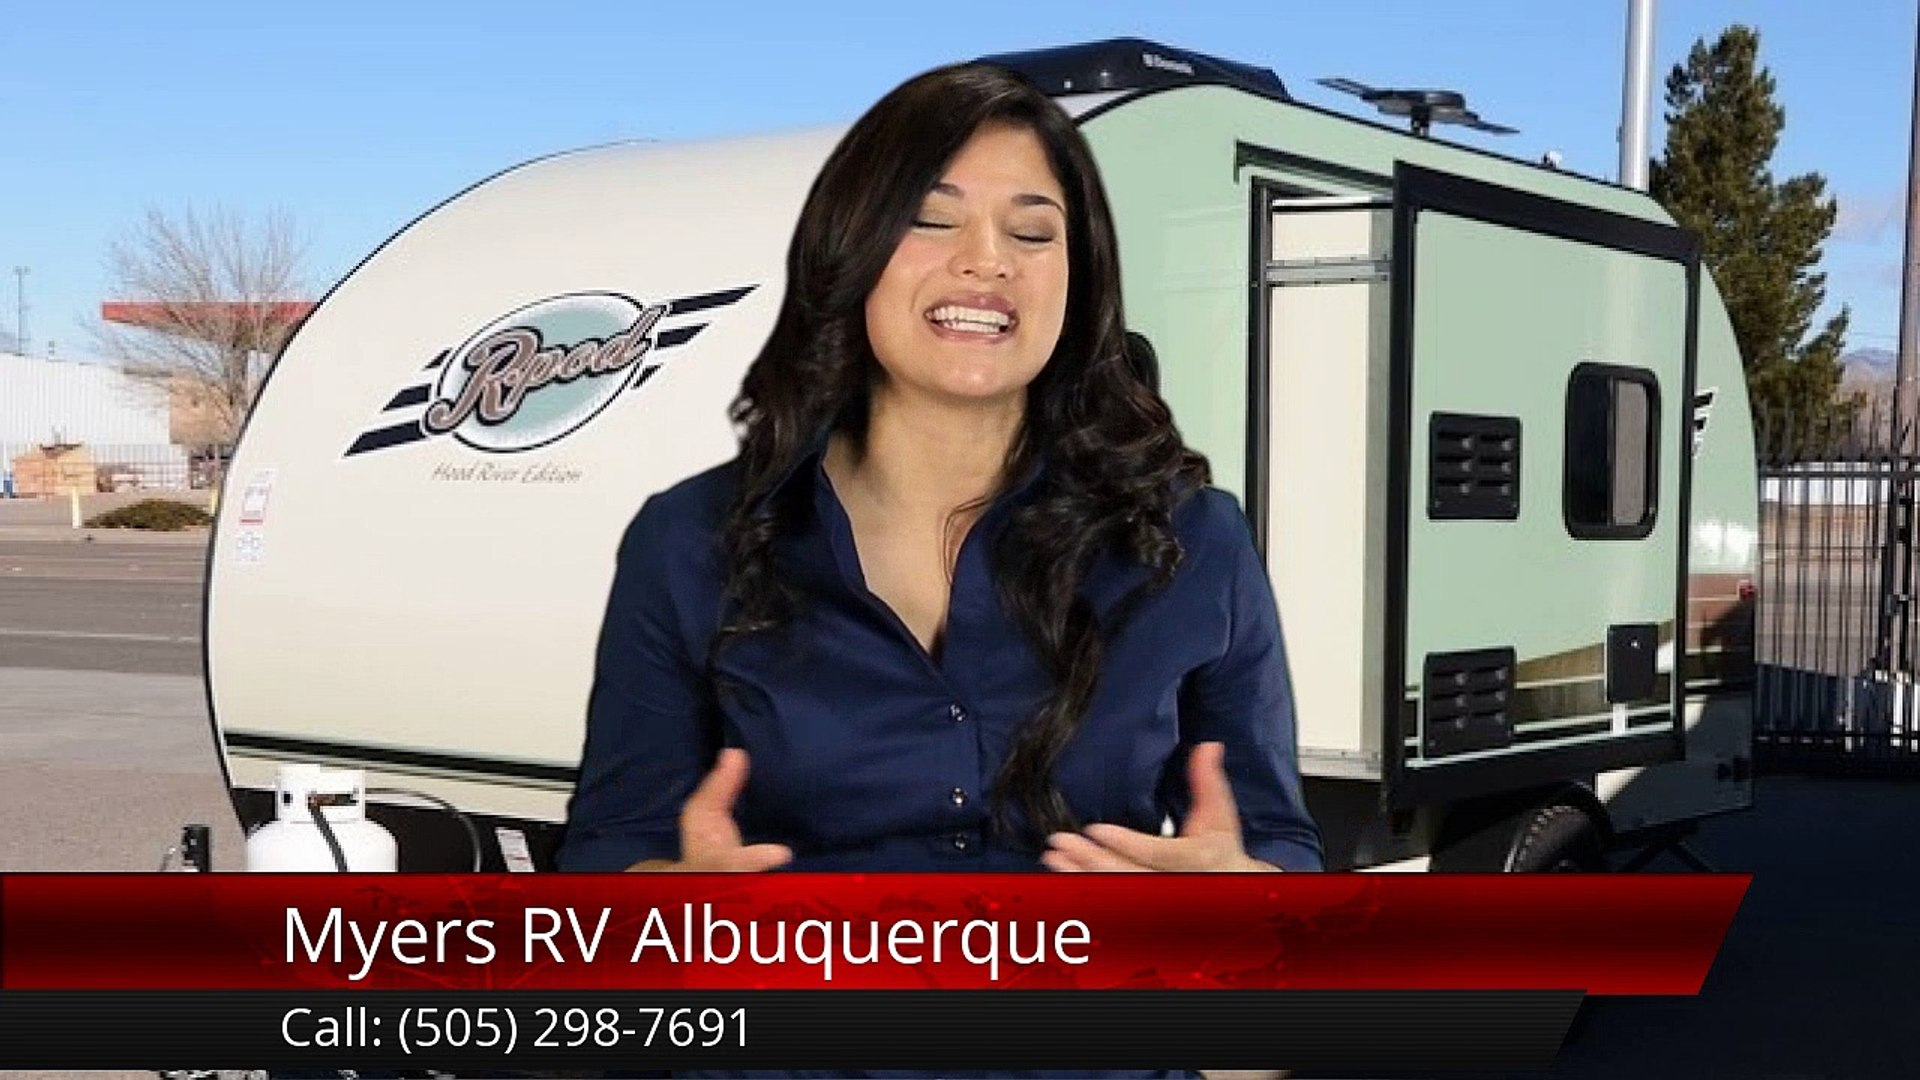 Myers RV Center Albuquerque Outstanding 5 Star Review by Peter W.